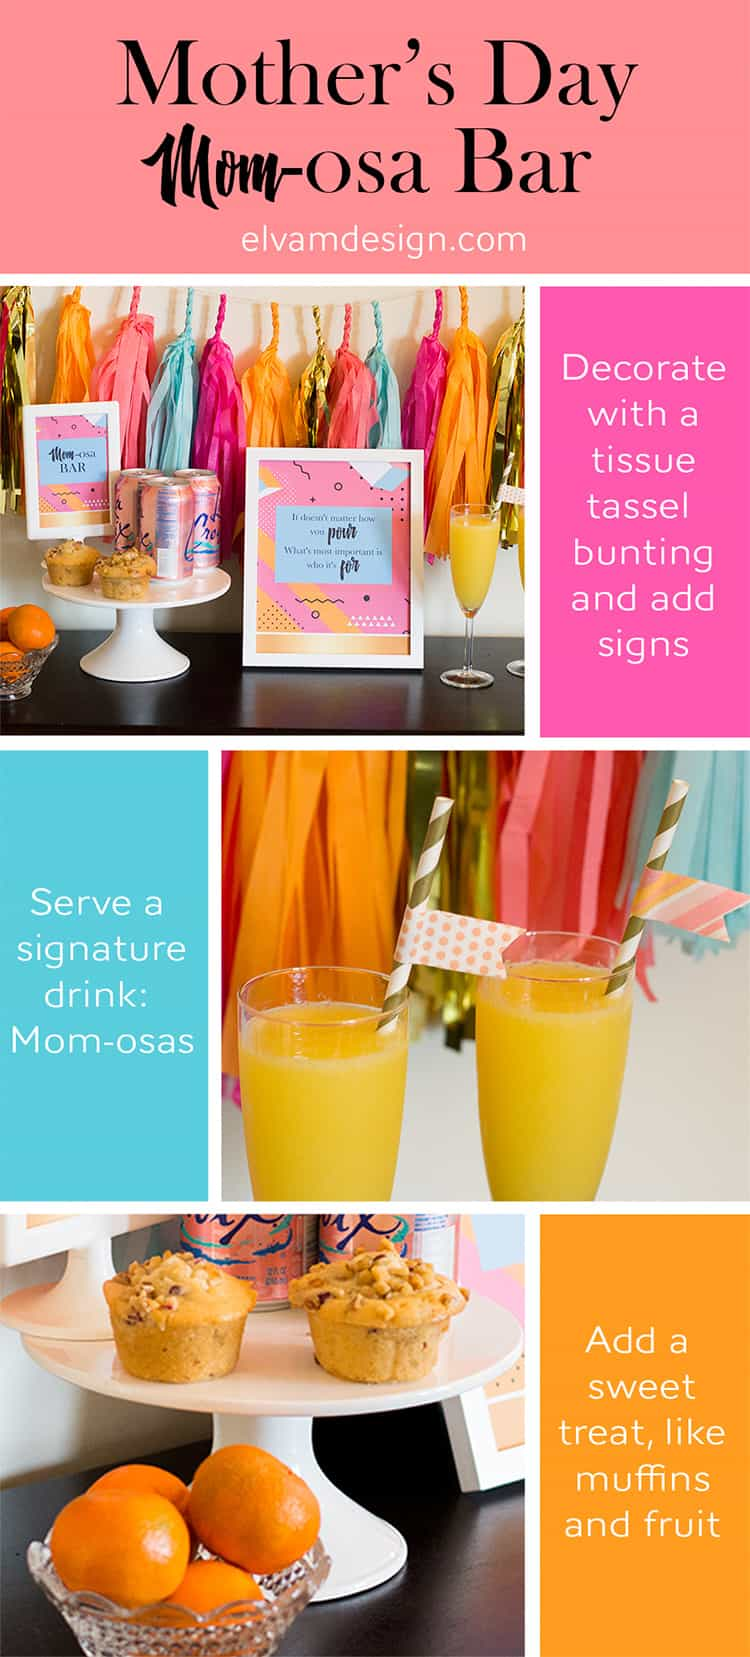 Throw a Mother's Day Mom-osa Bar with tips from Elva M Design Studio